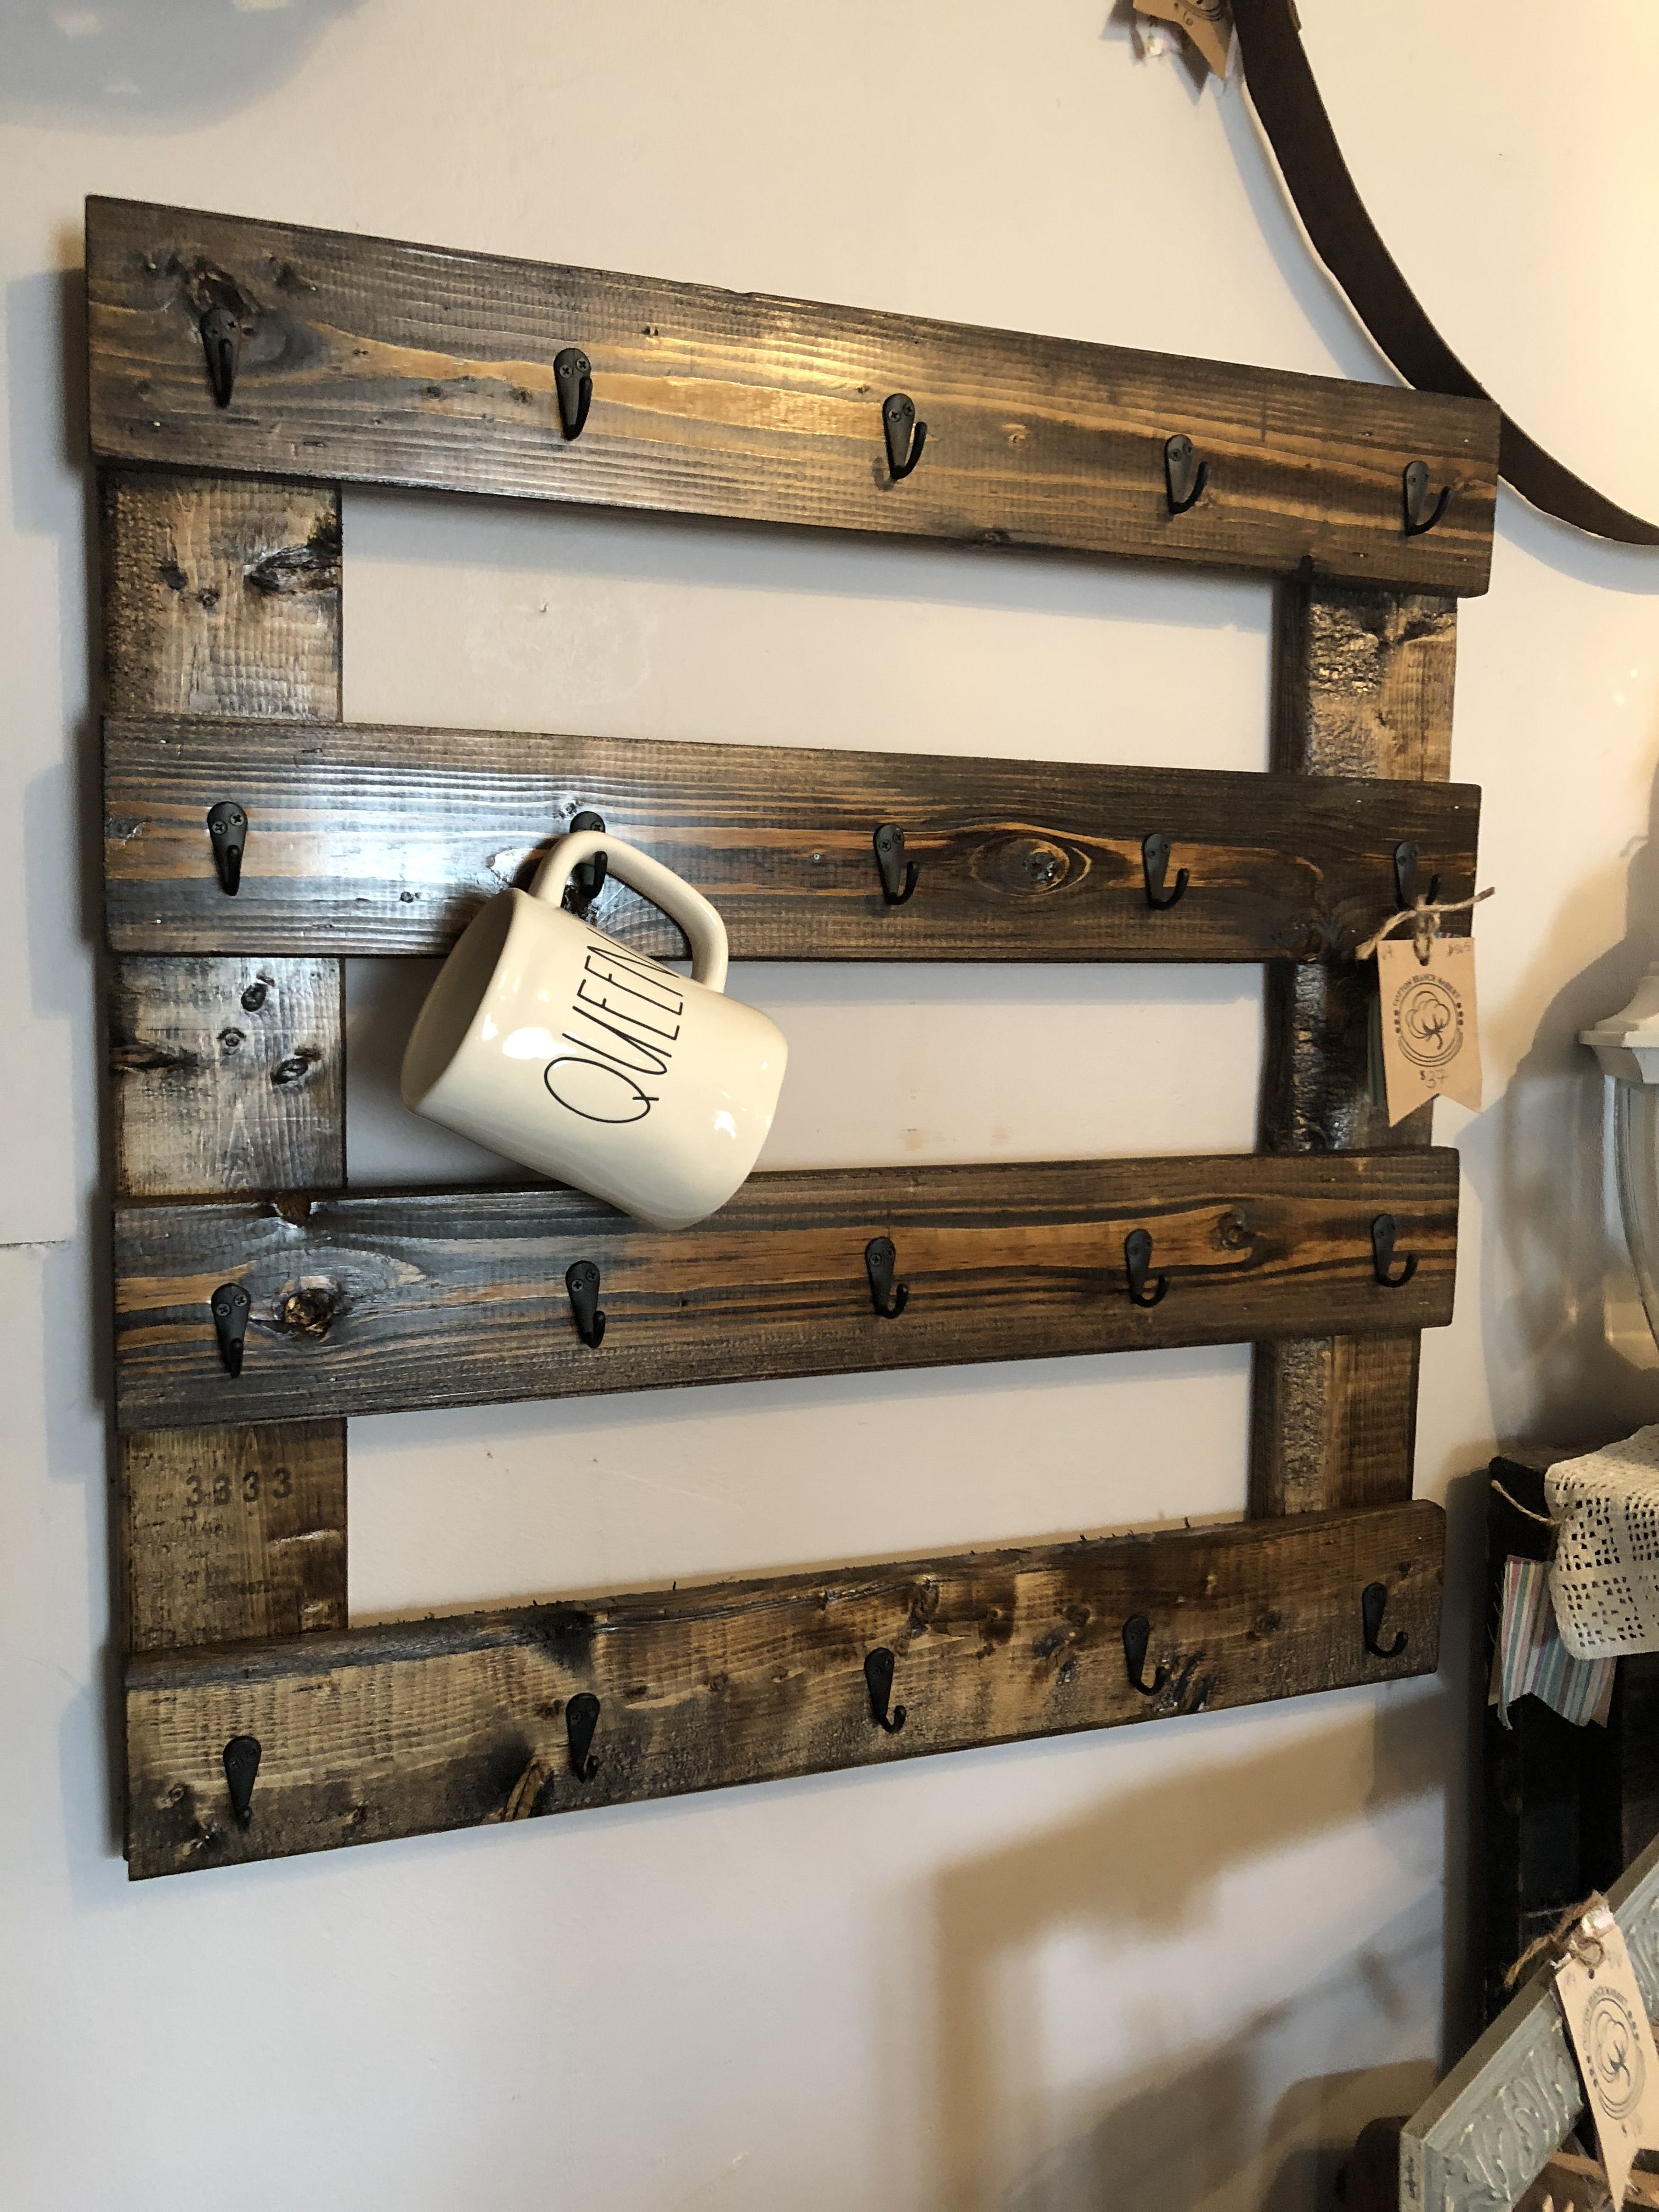 Pallet Coffee Mug Holder Rae Dunn Diy Coffee Bar Shop Dunn Diy Diy Coffee Bar Coffee Cups Diy